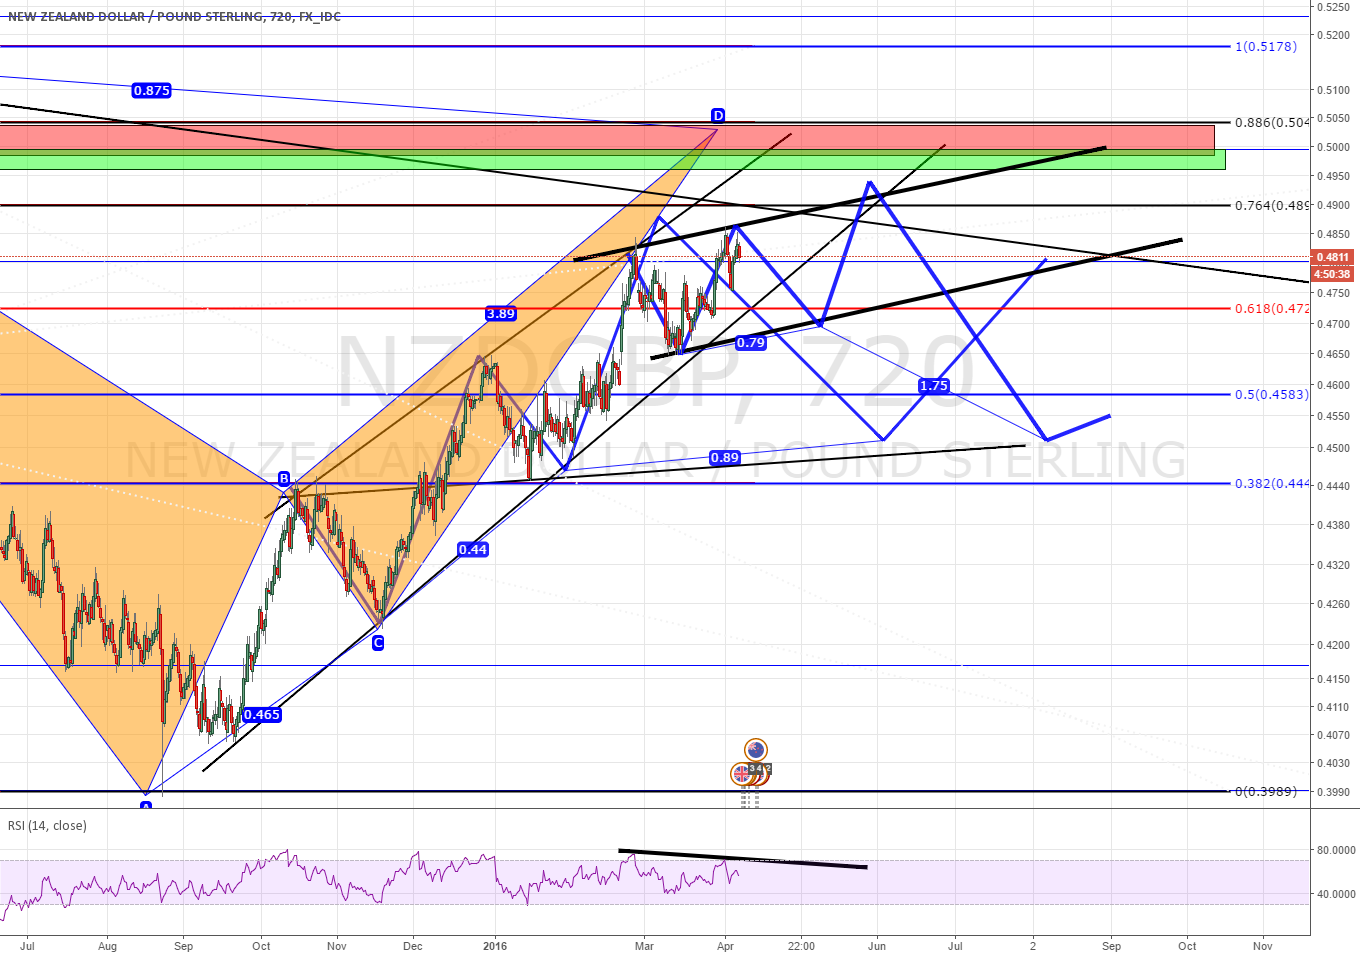 NZDGBP (inversed GBPNZD) SHORTING THE CHANNEL ON 3 wave + DIV